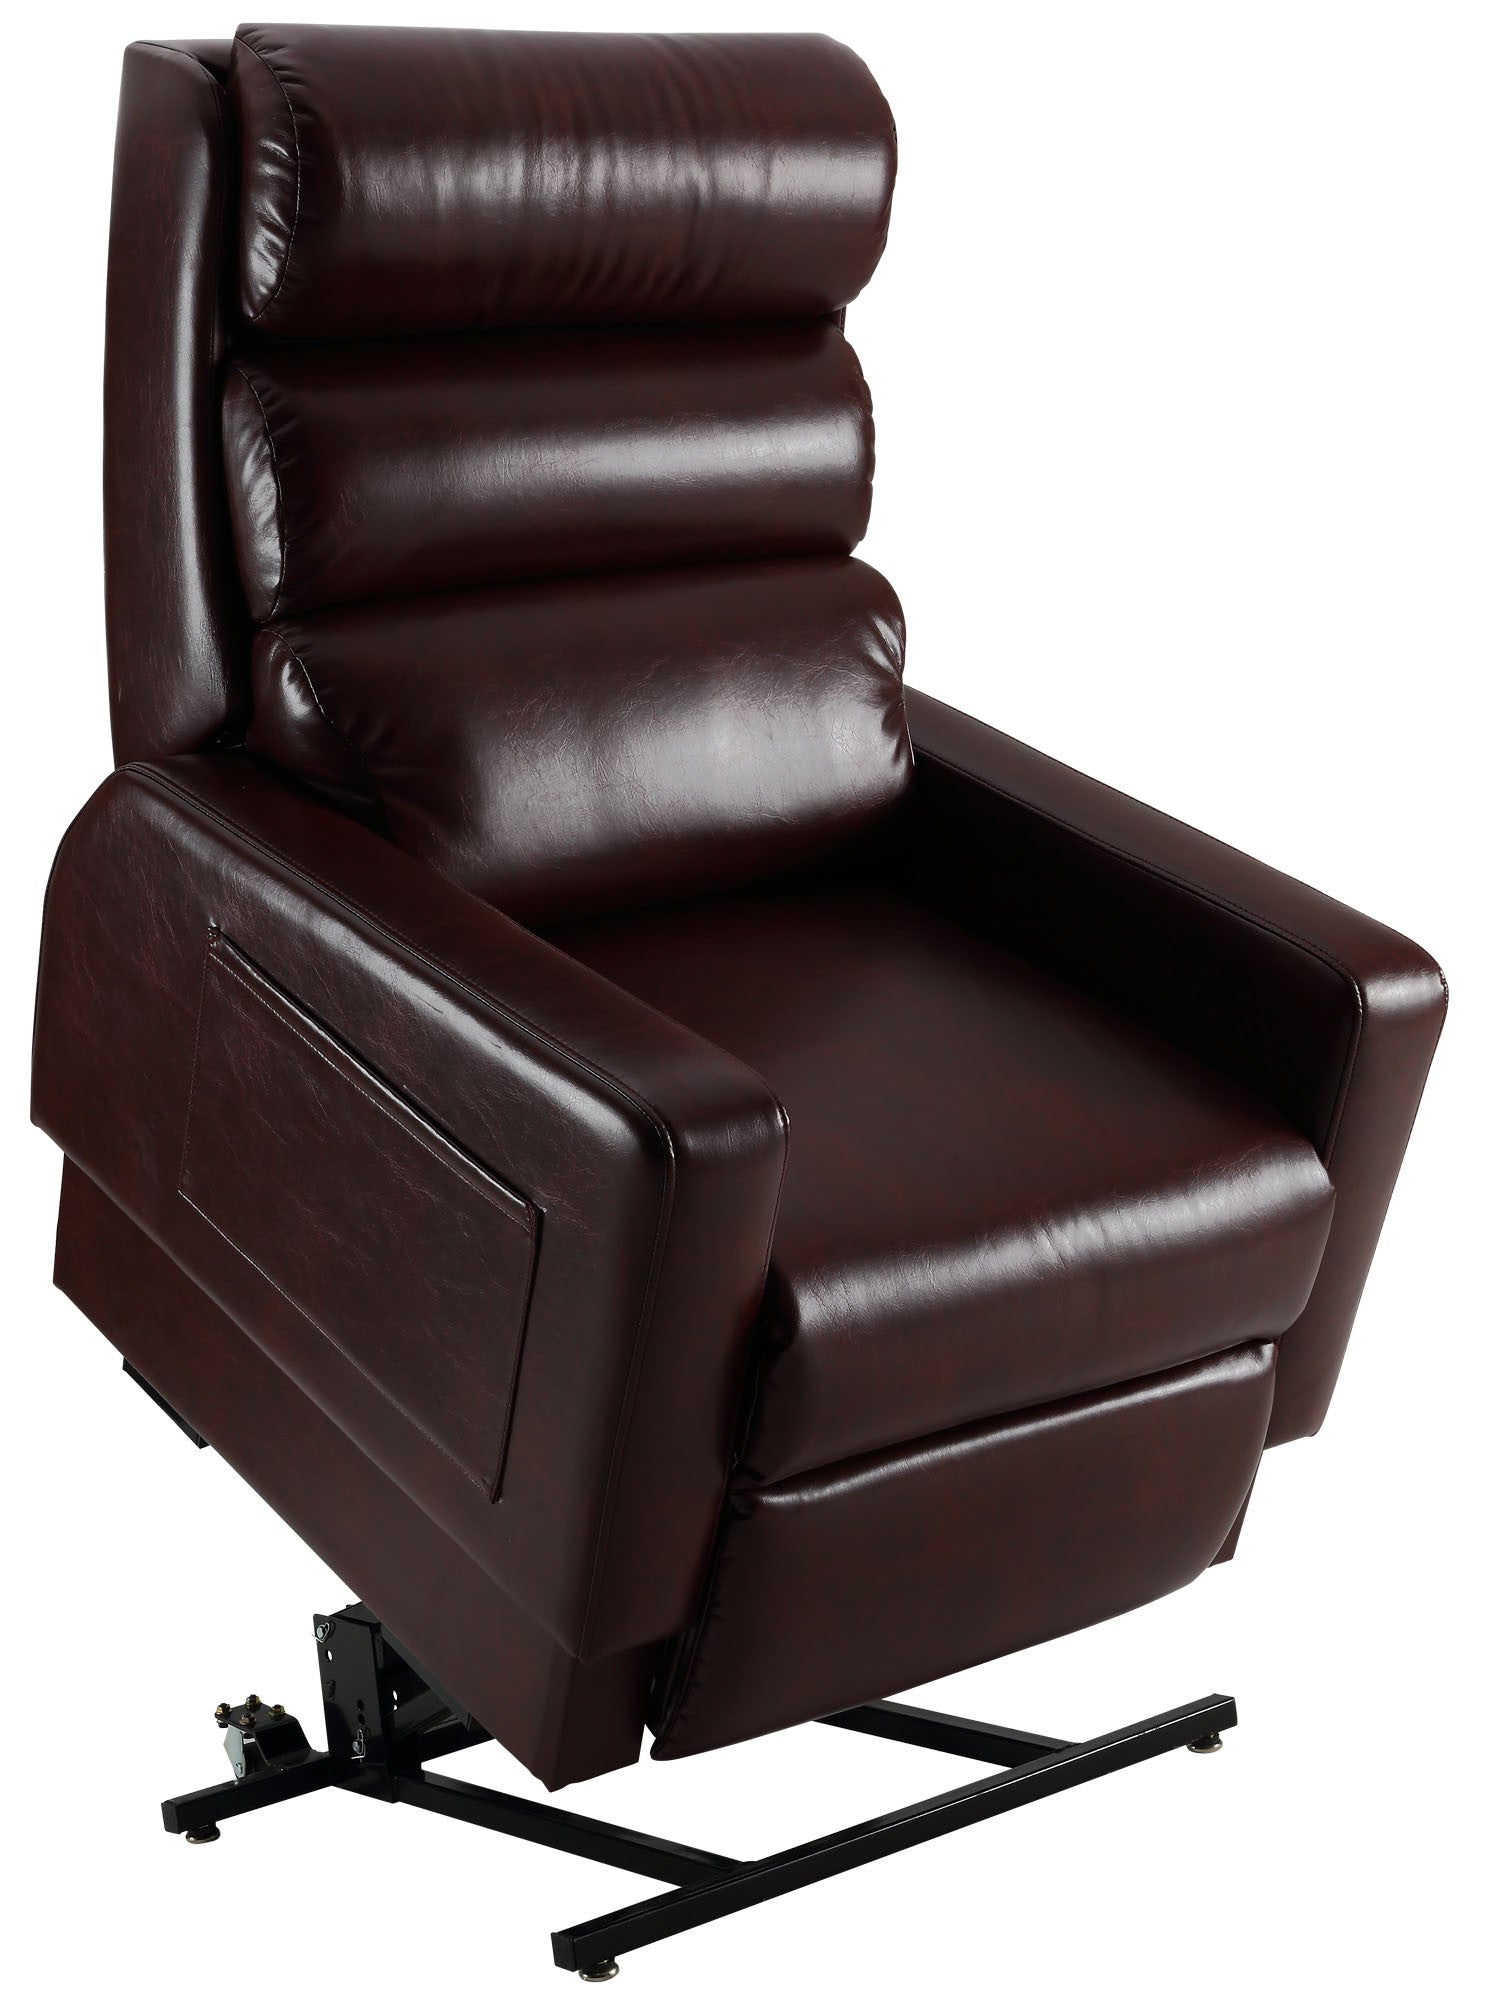 Cozzia MC520 Mobility Chair cranberry ...  sc 1 st  Lift and Massage Chairs & MC520 | Lift Recliner Chairs | Stand Assist Recliner - Lift and ... islam-shia.org